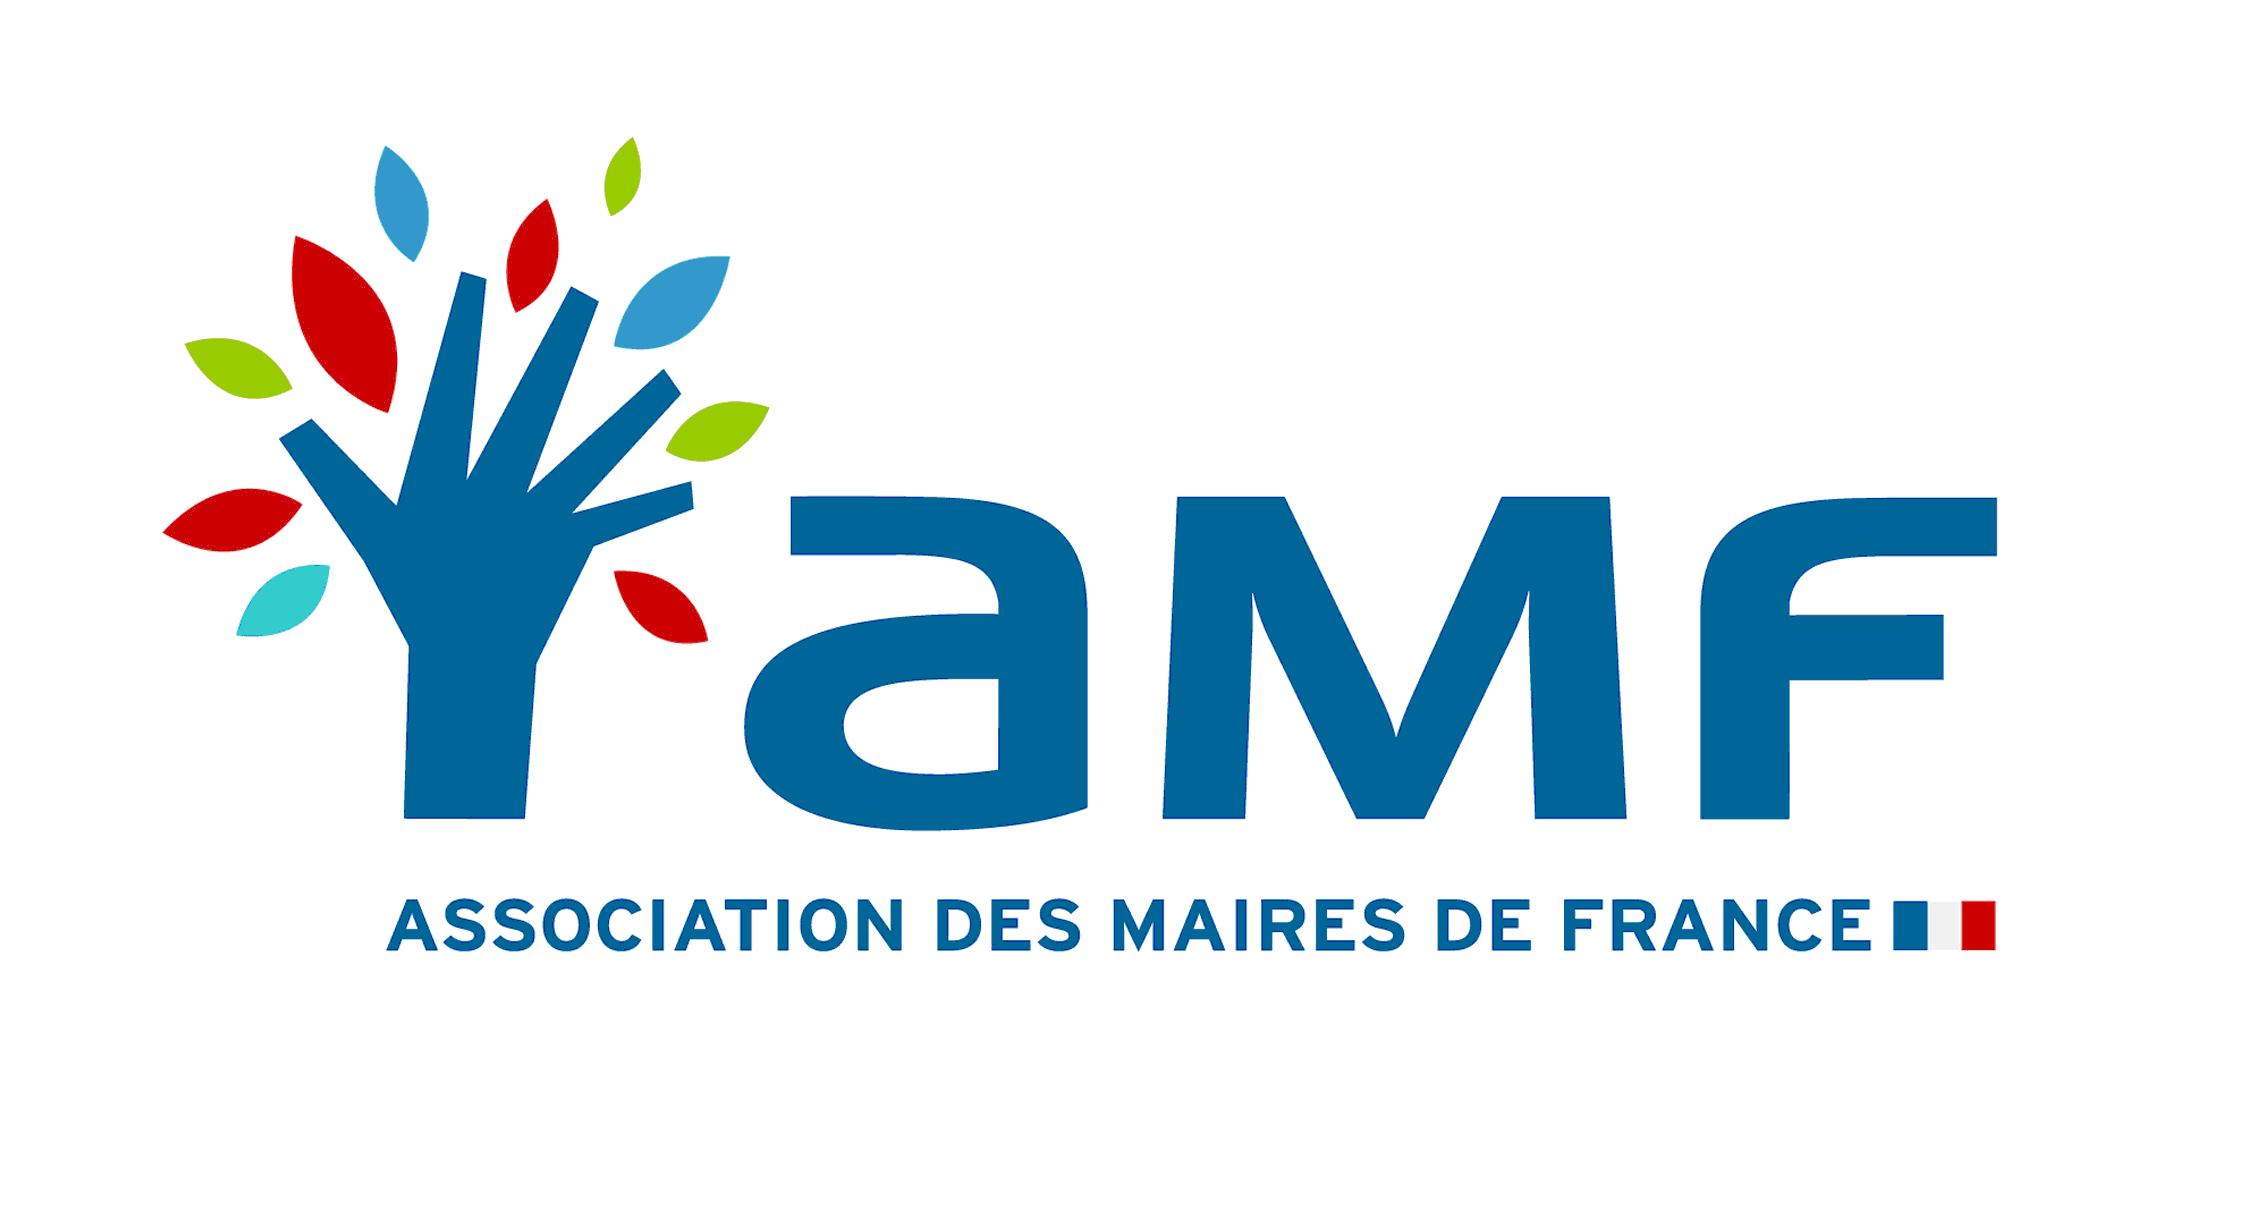 Association of French Mayors' logo